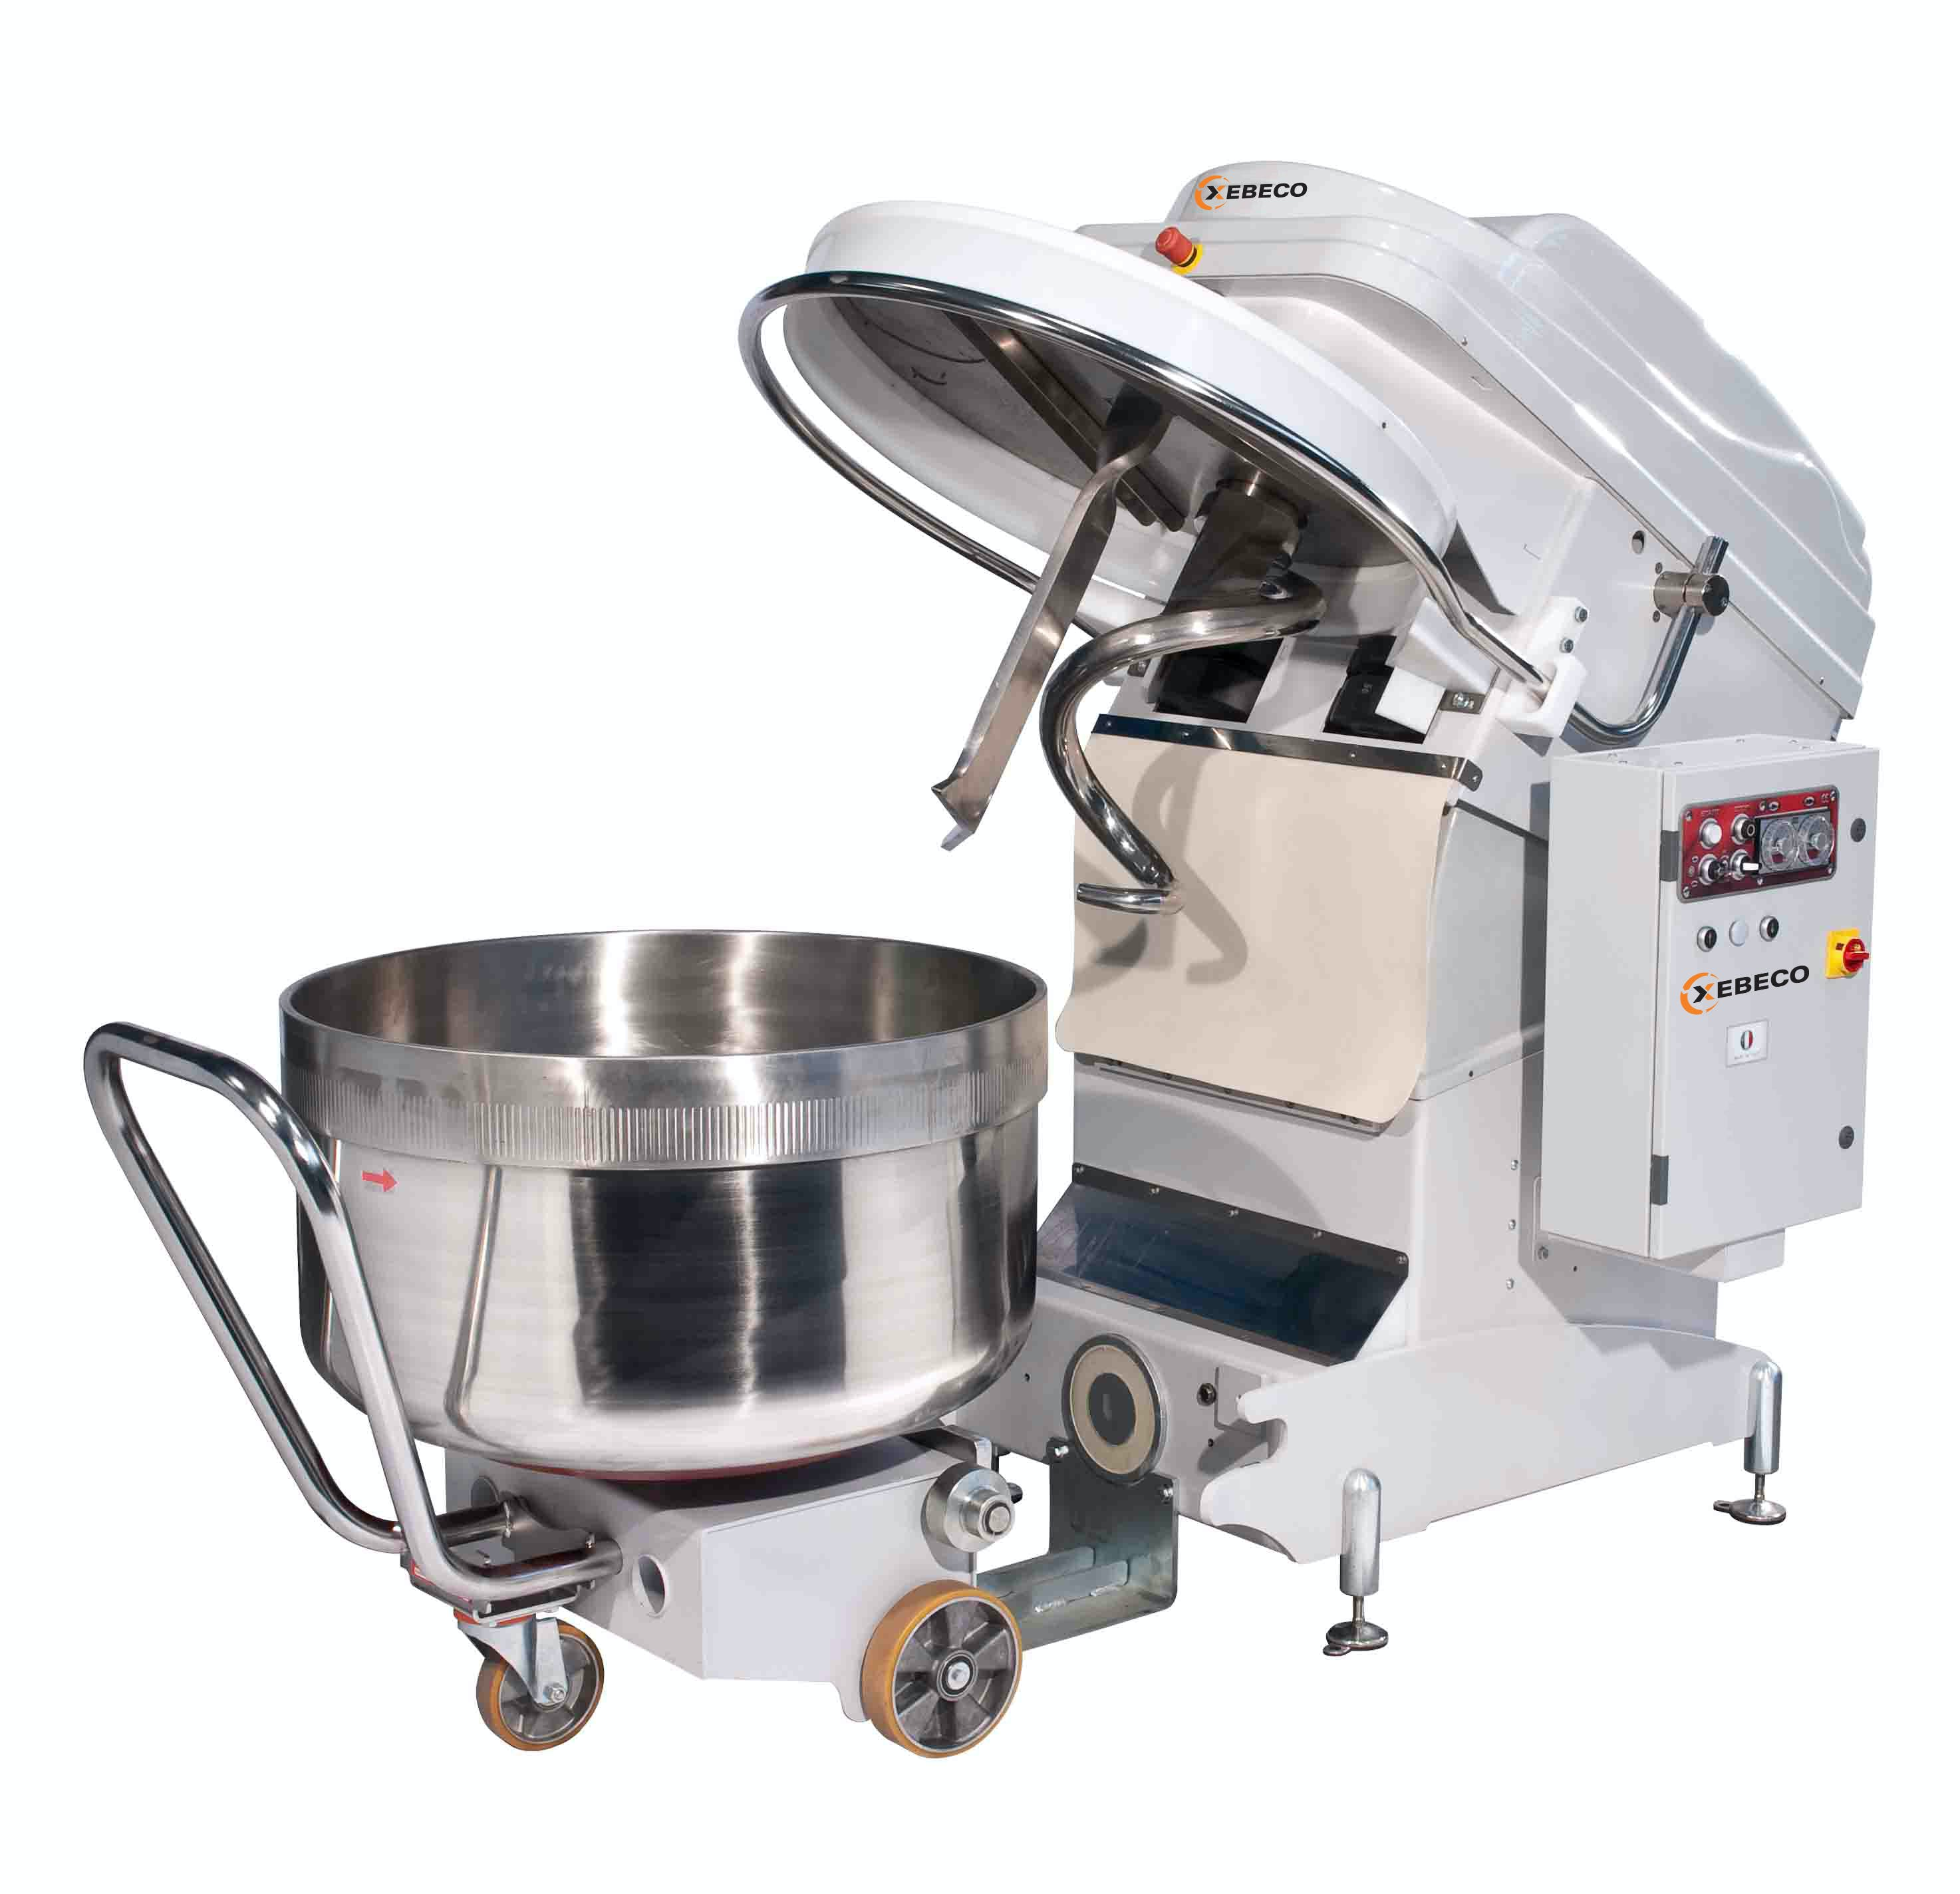 XeRRB550 Redline Mixer with Removable Bowl Mixer sold by Pizza Solutions